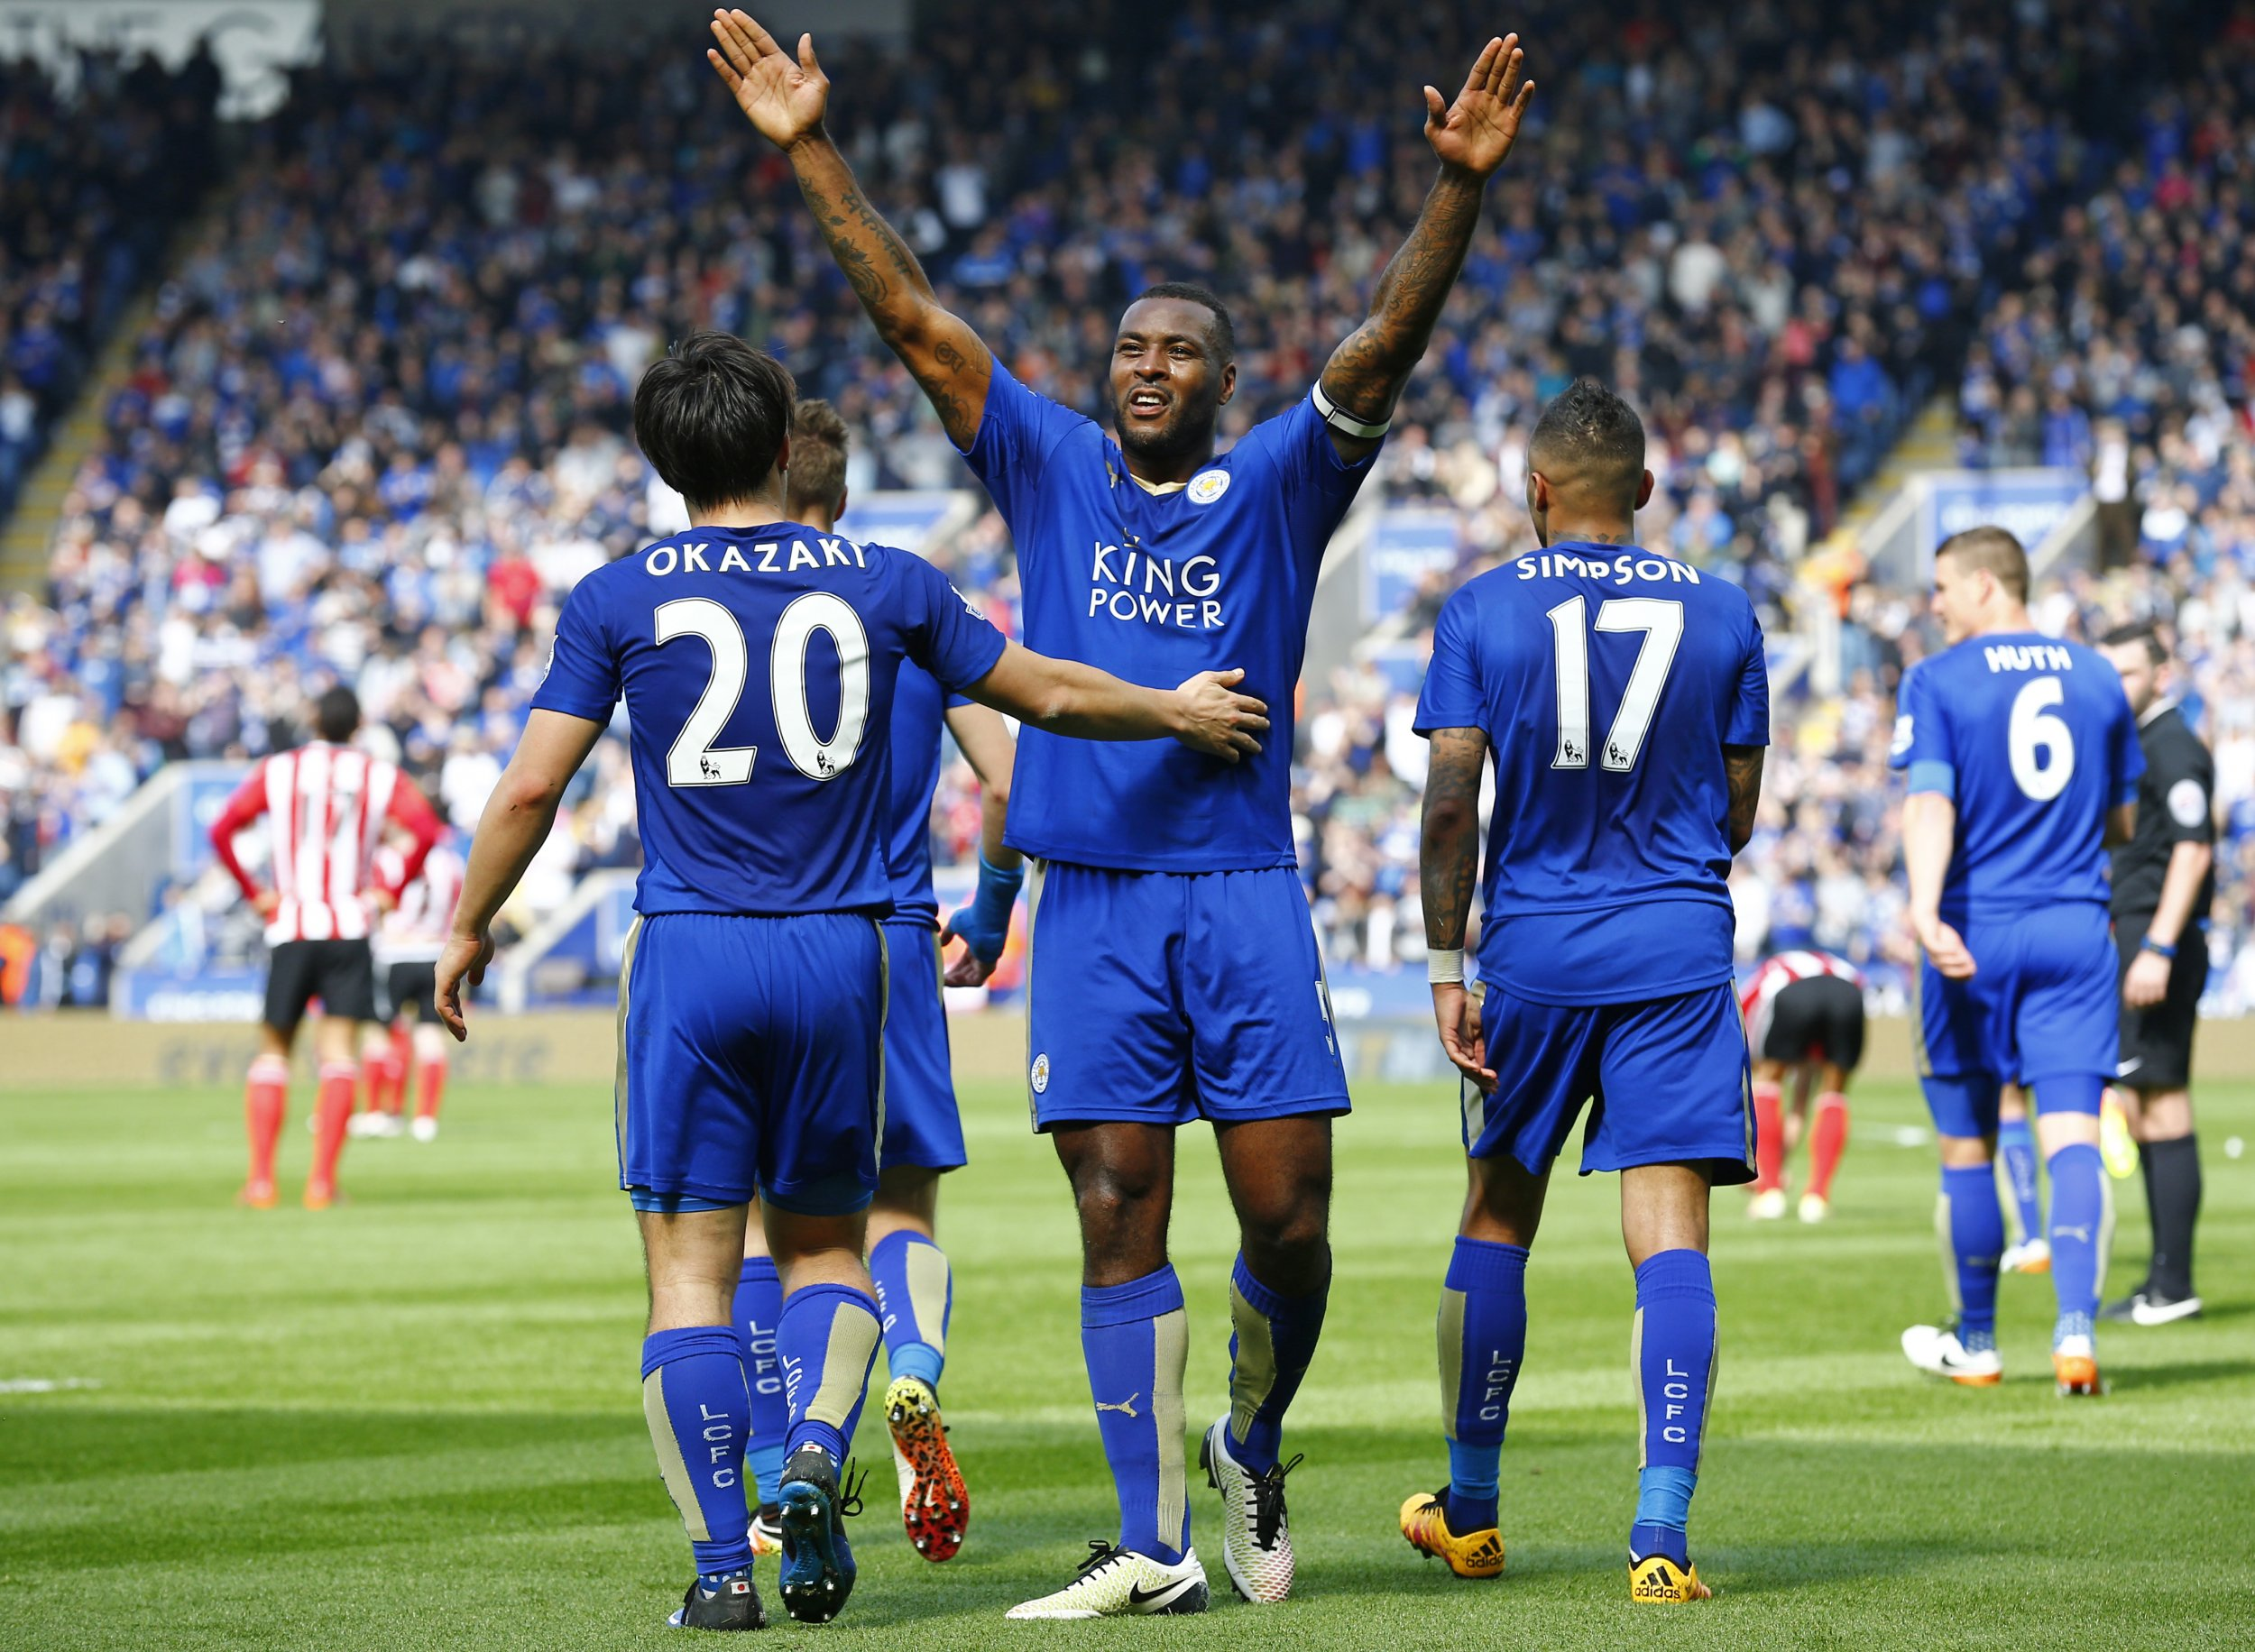 leicester city - photo #22